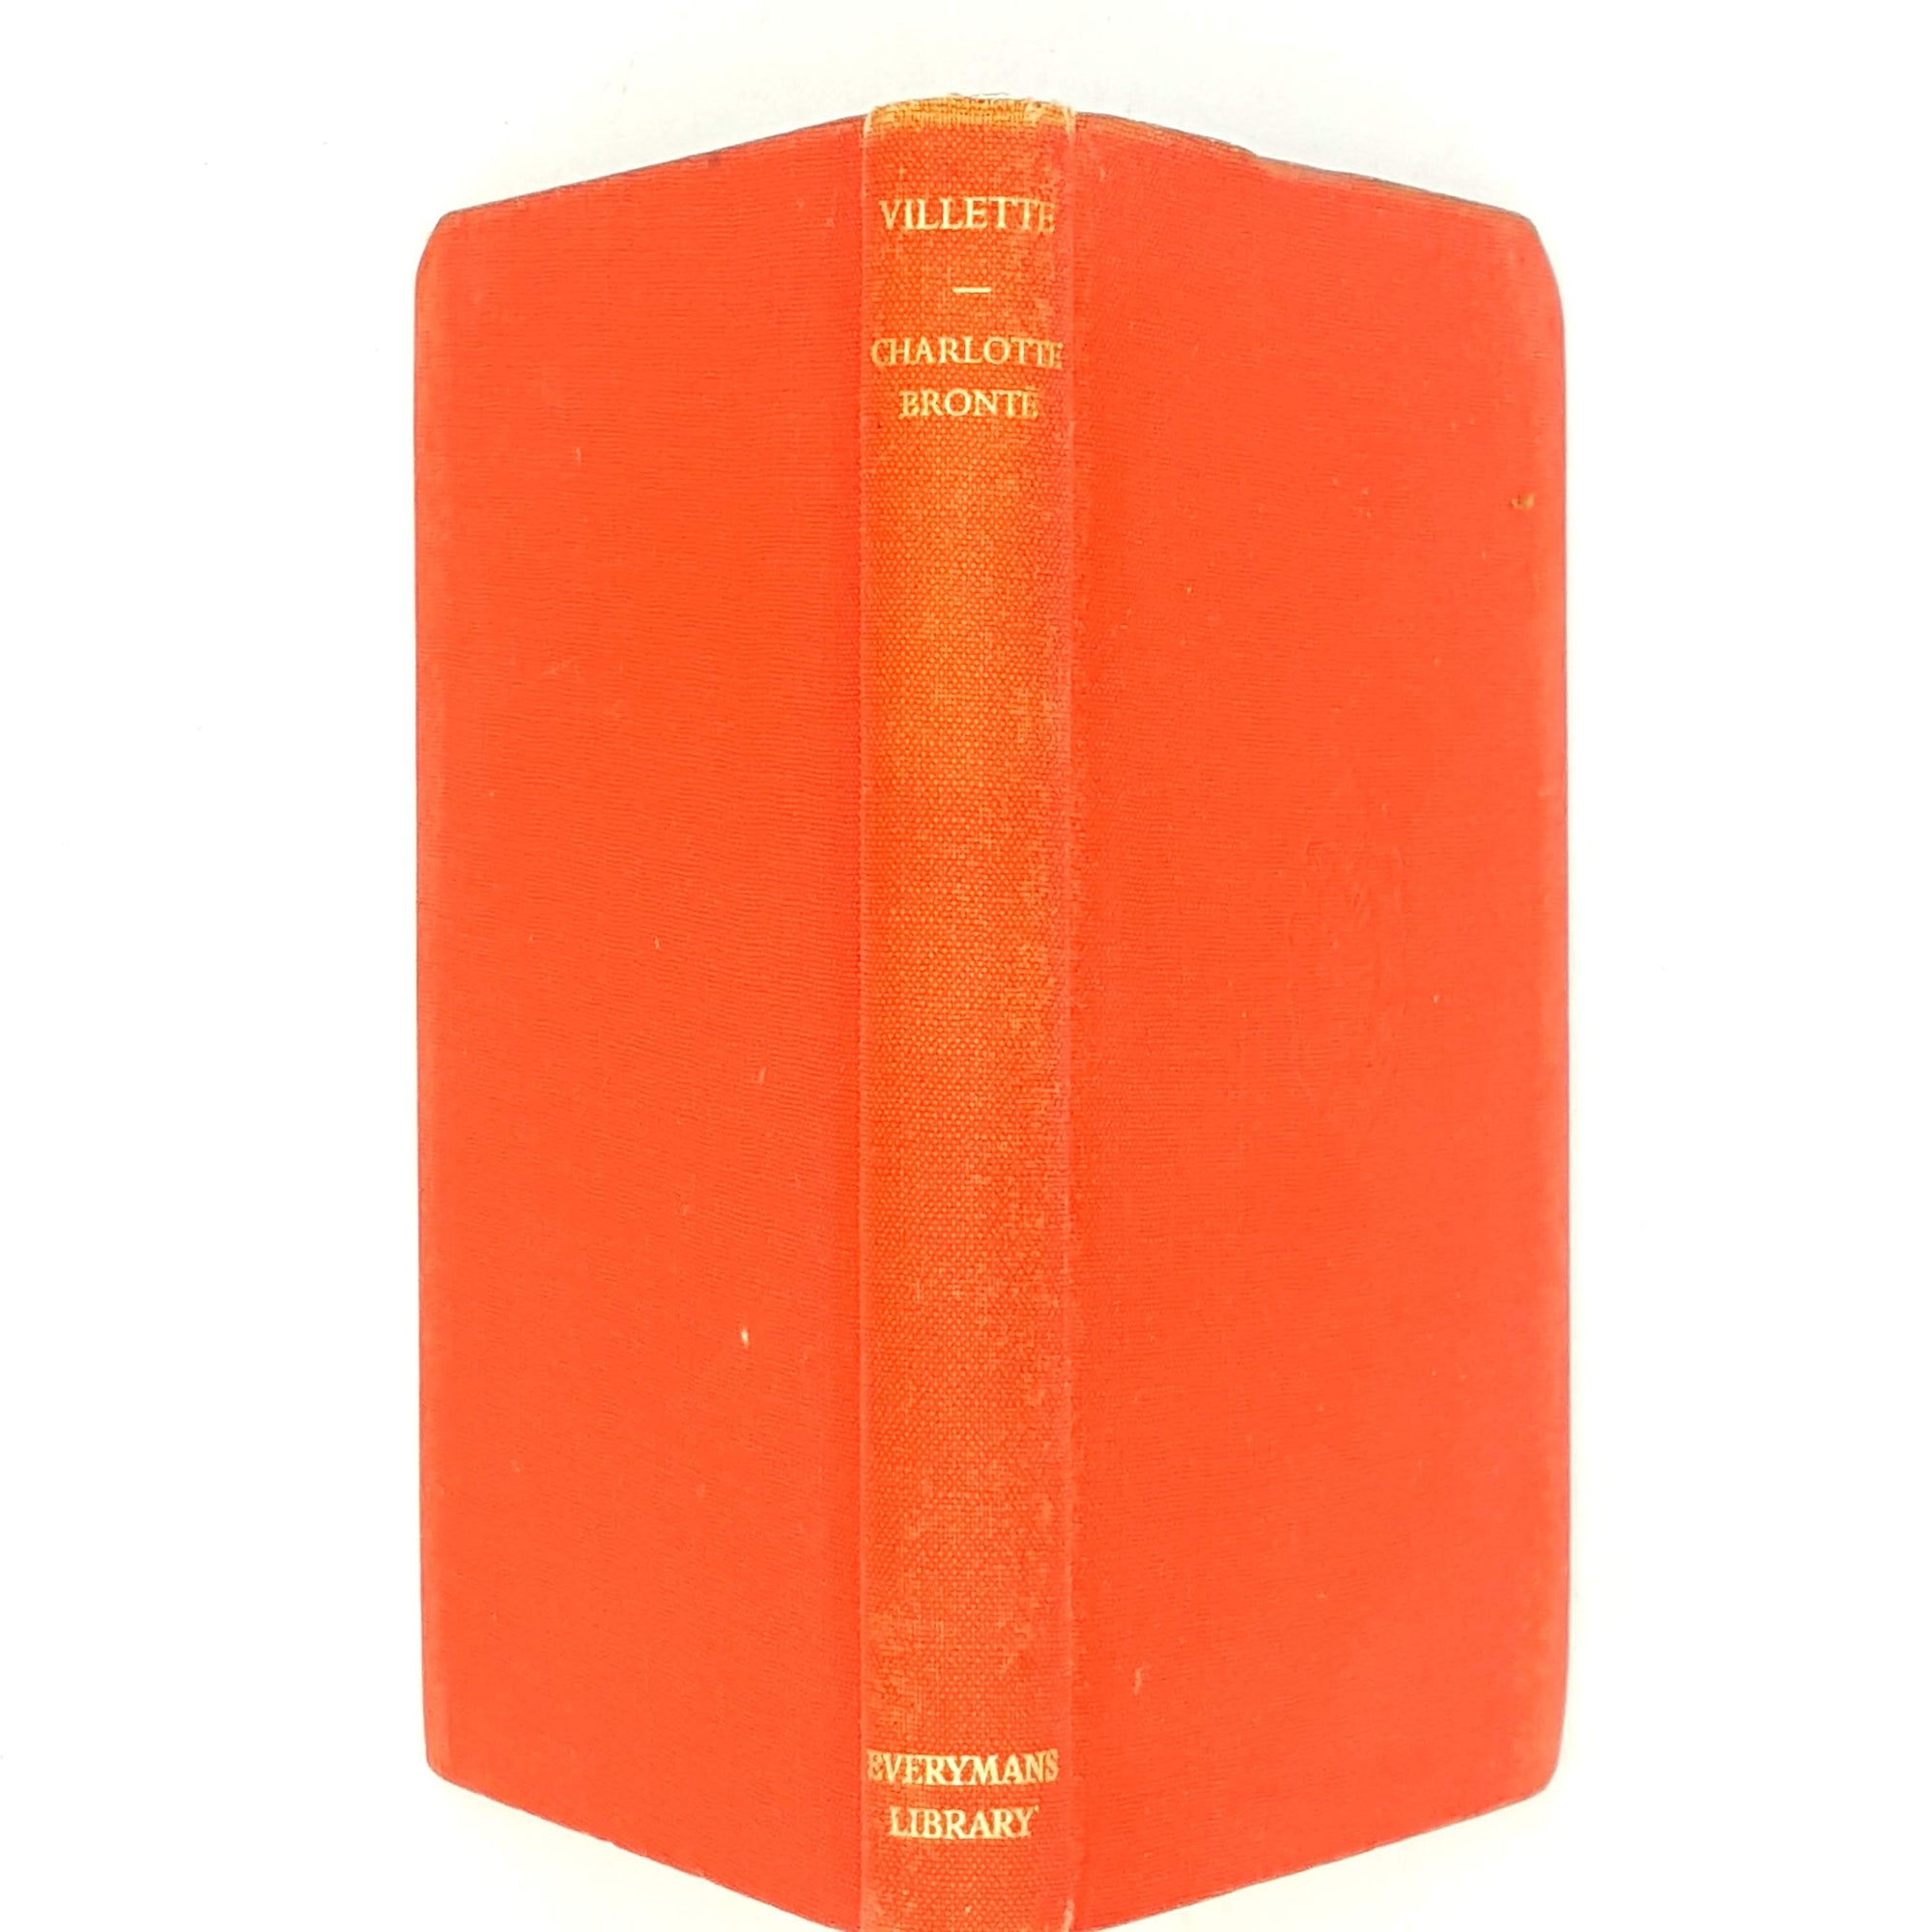 Villette Everymans Library Edition by Charlotte Bronte